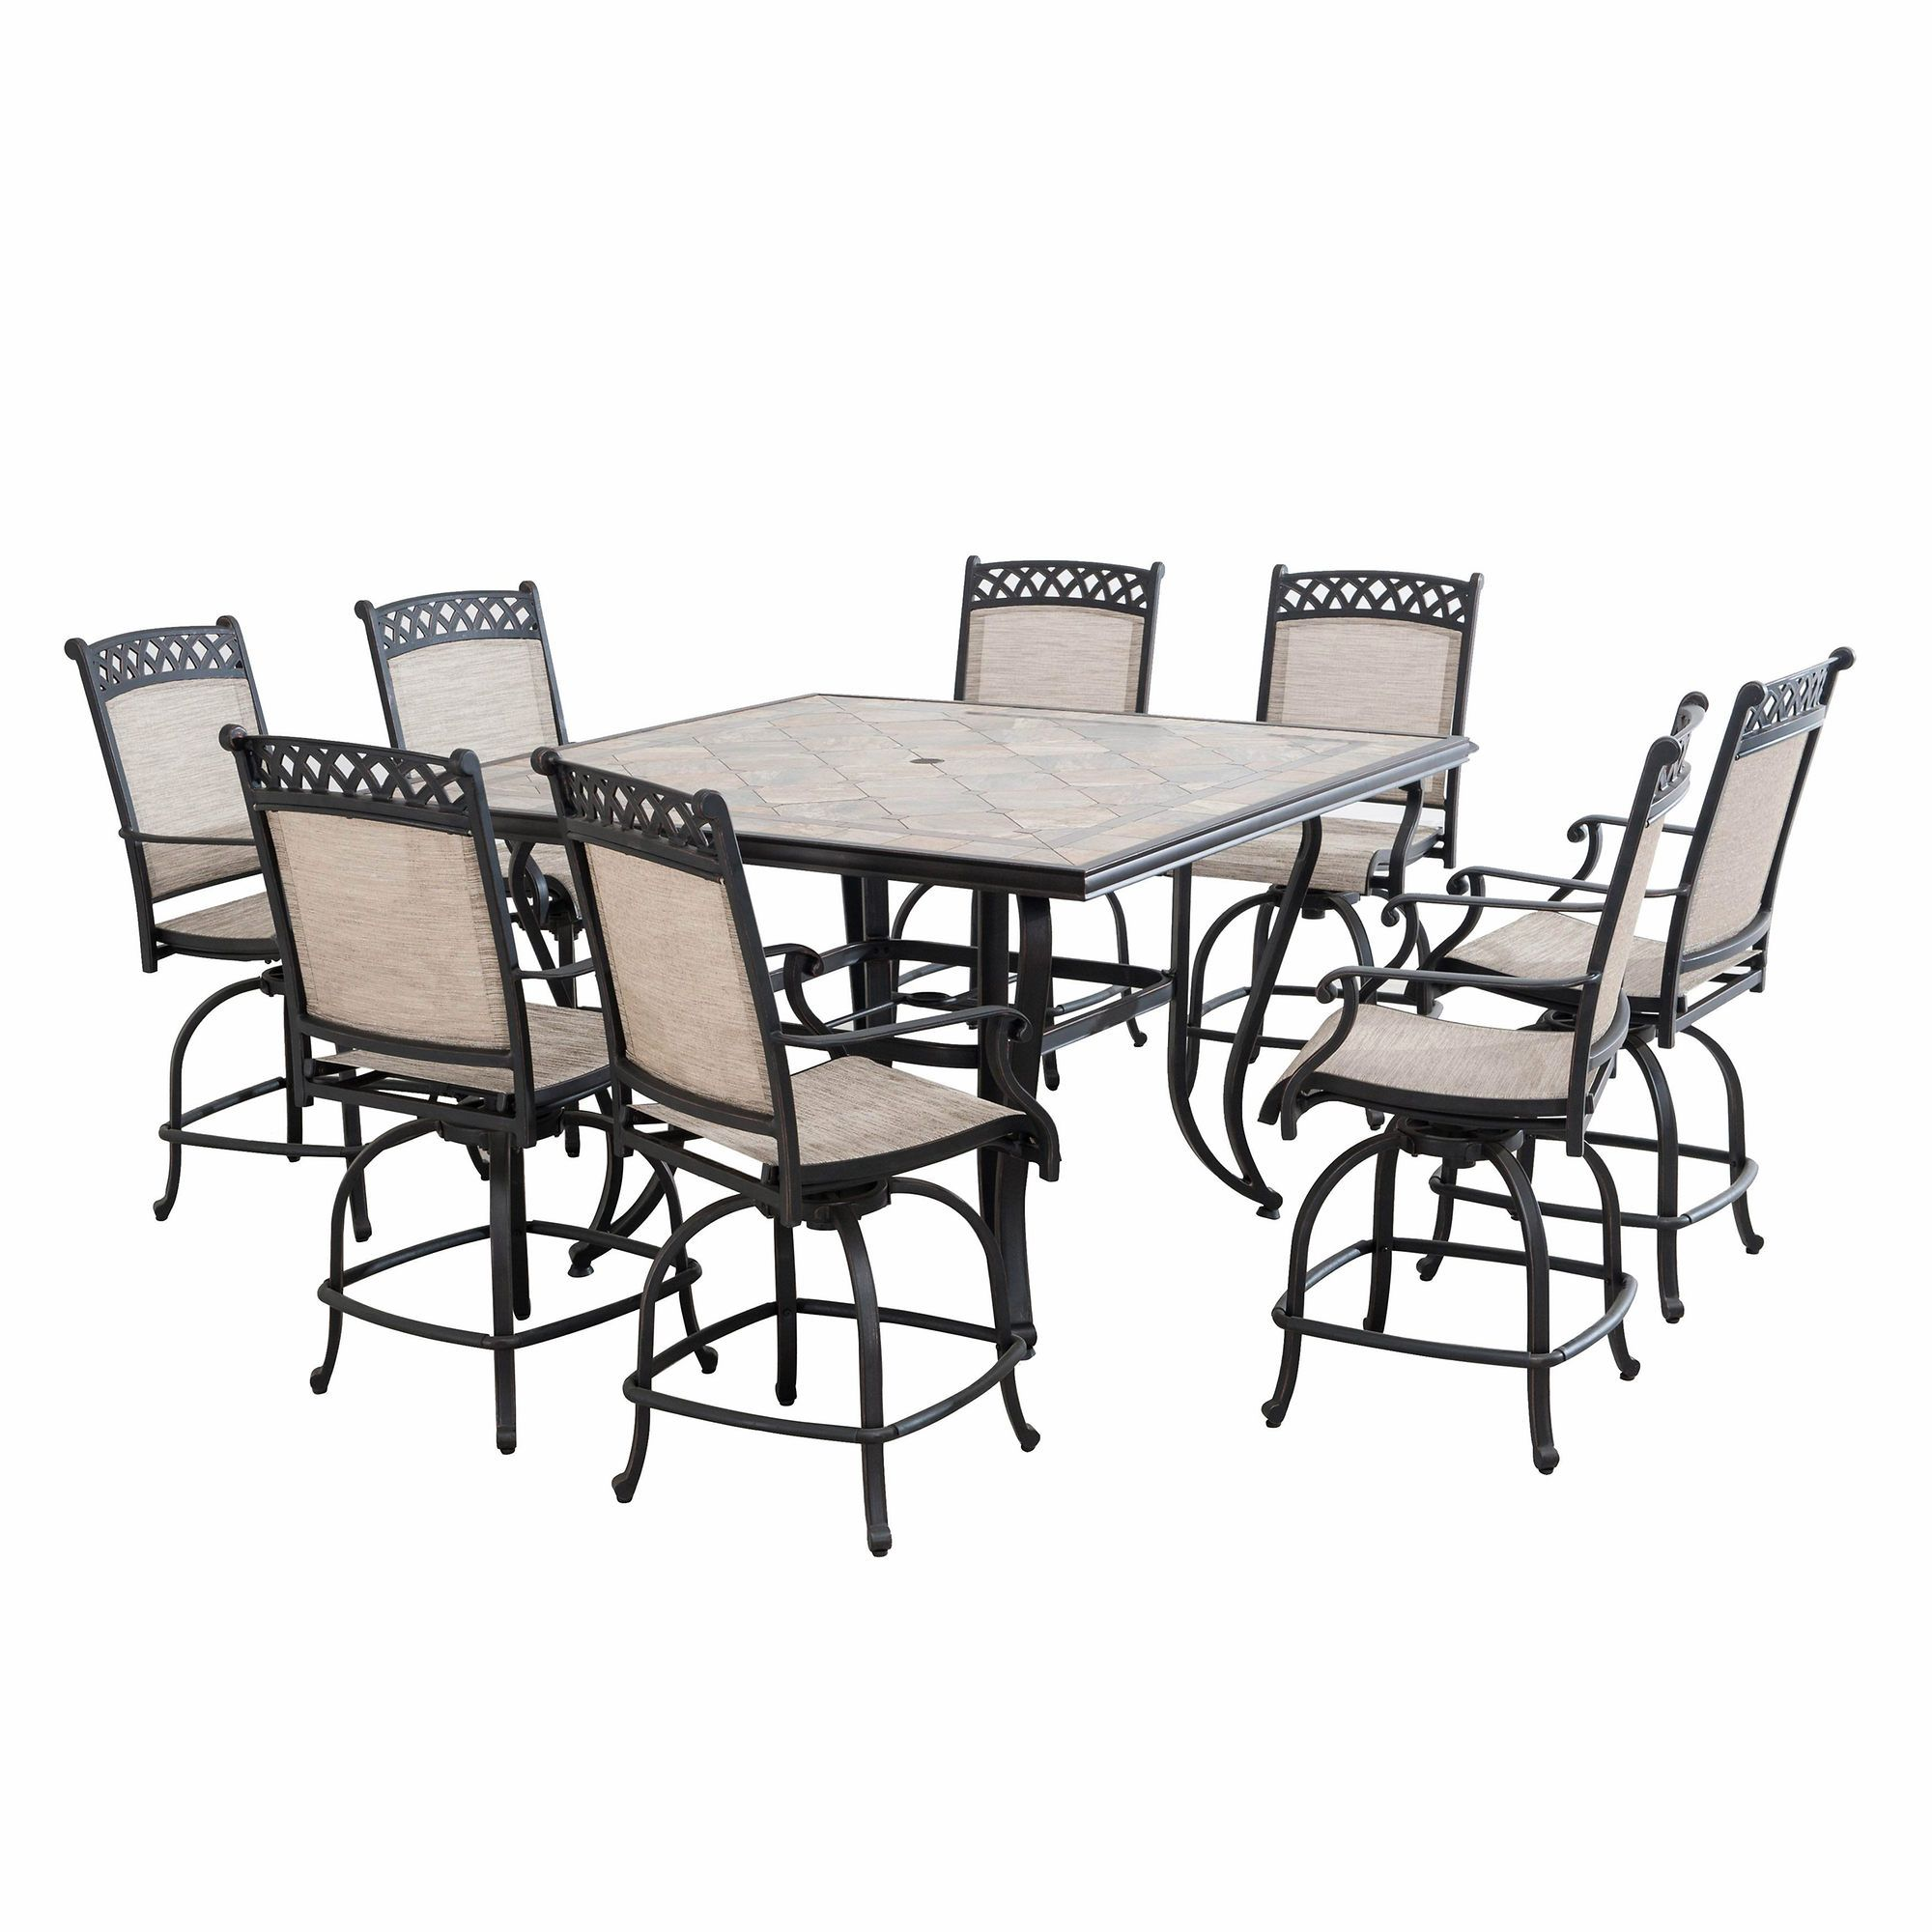 berkley jensen milan 9 pc high dining set bj s wholesale club